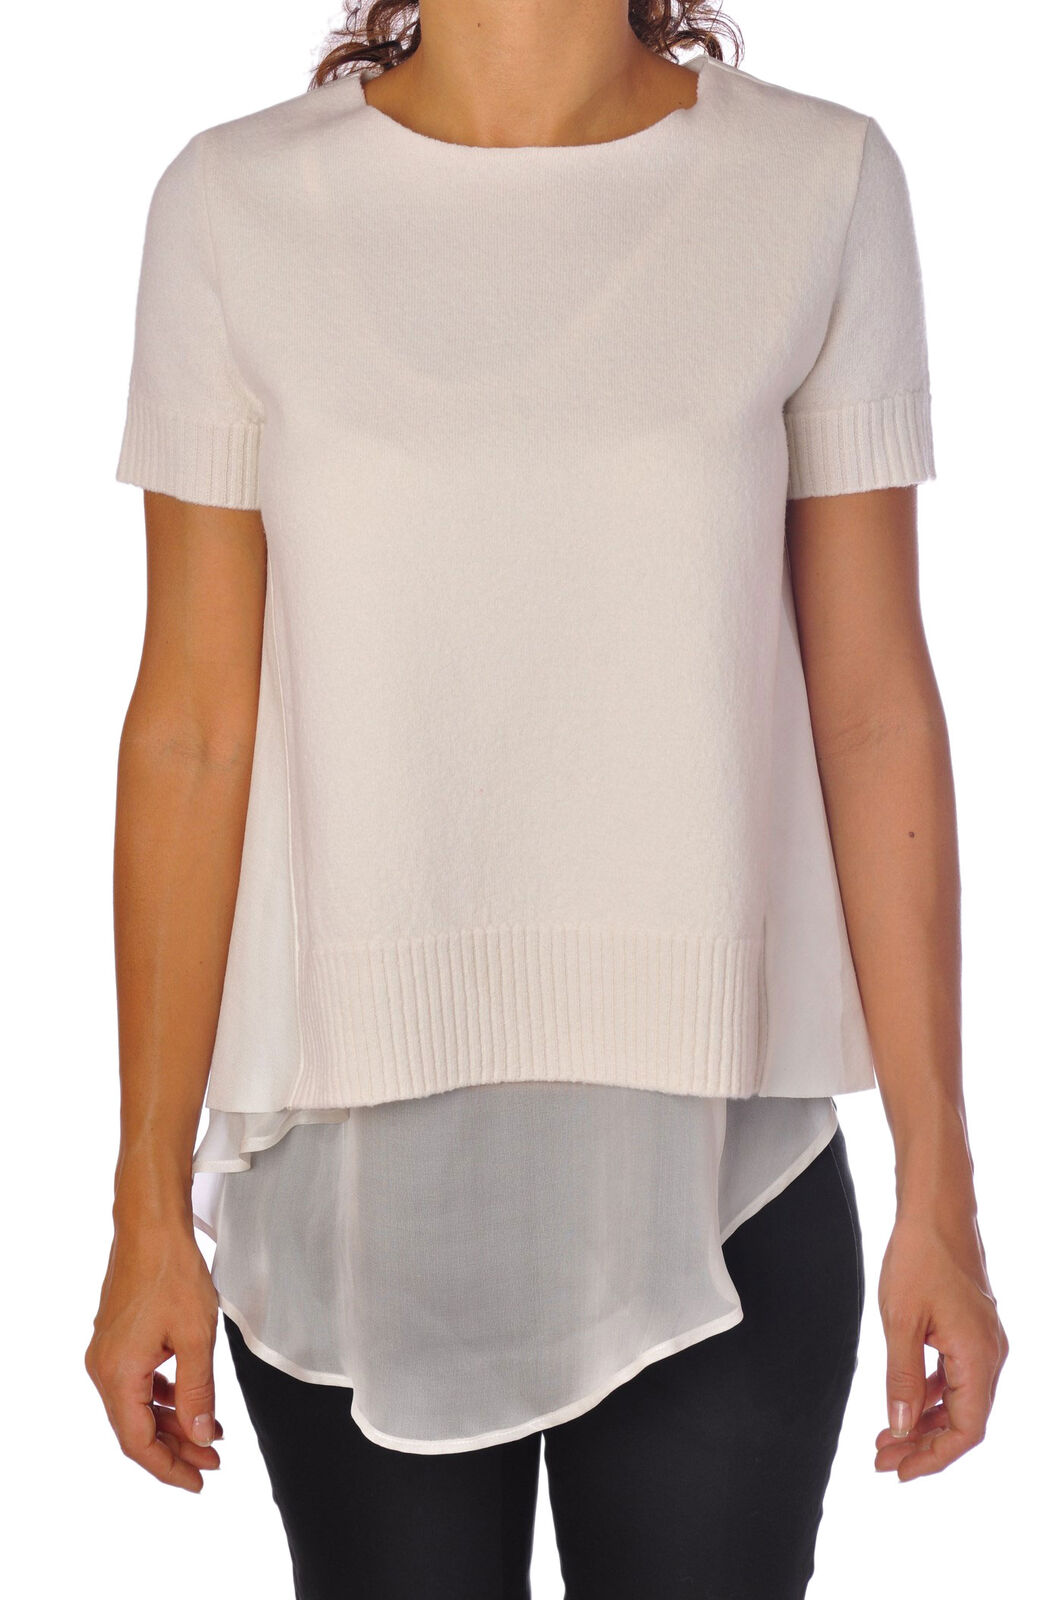 Dondup  -  Sweaters - Female - White - 372727A185214